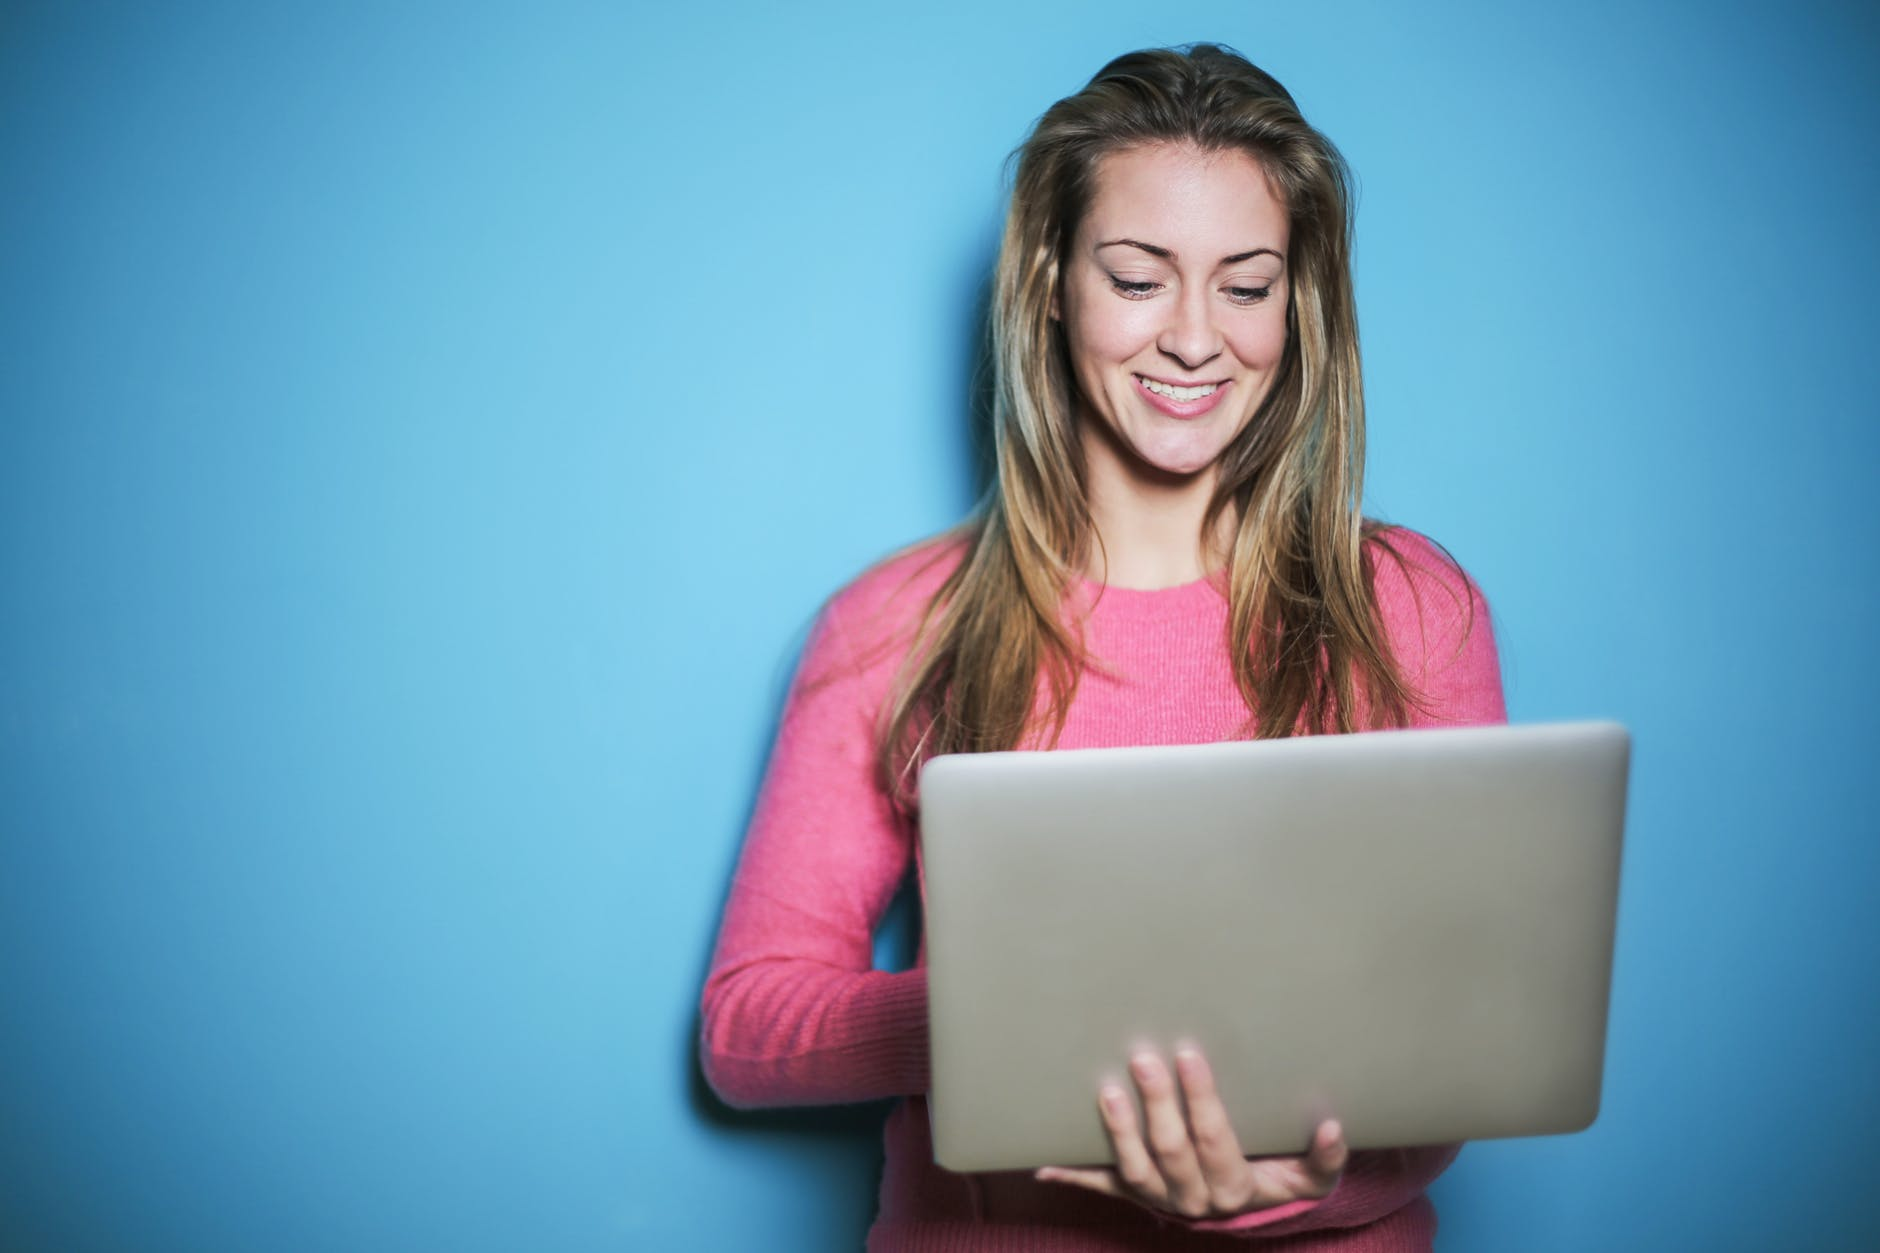 woman in pink long sleeve shirt holding silver laptop computer